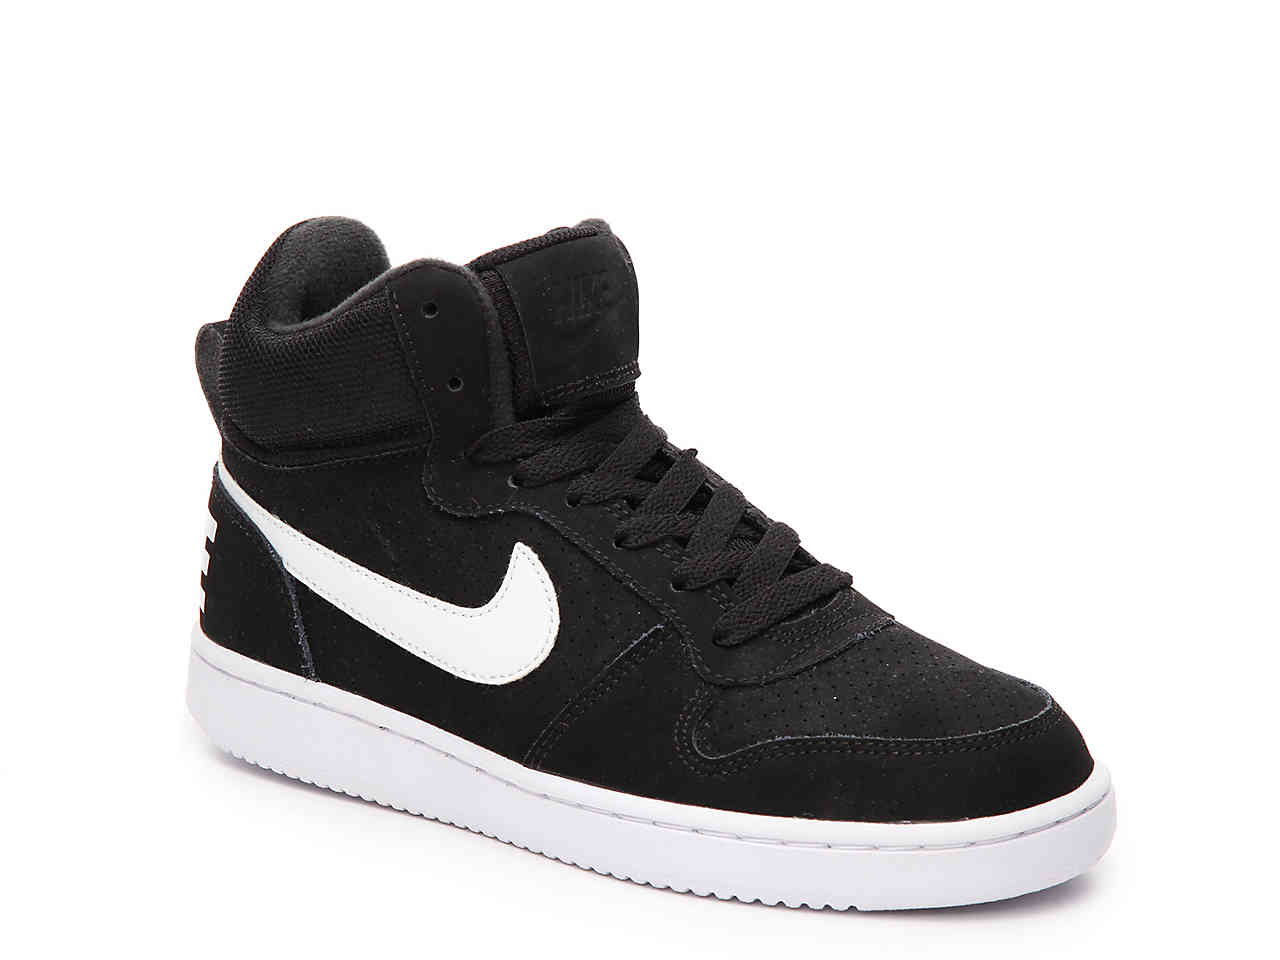 Nike COURT BOROUGH MID Womens Black White Laced Athletic Sneakers Shoes